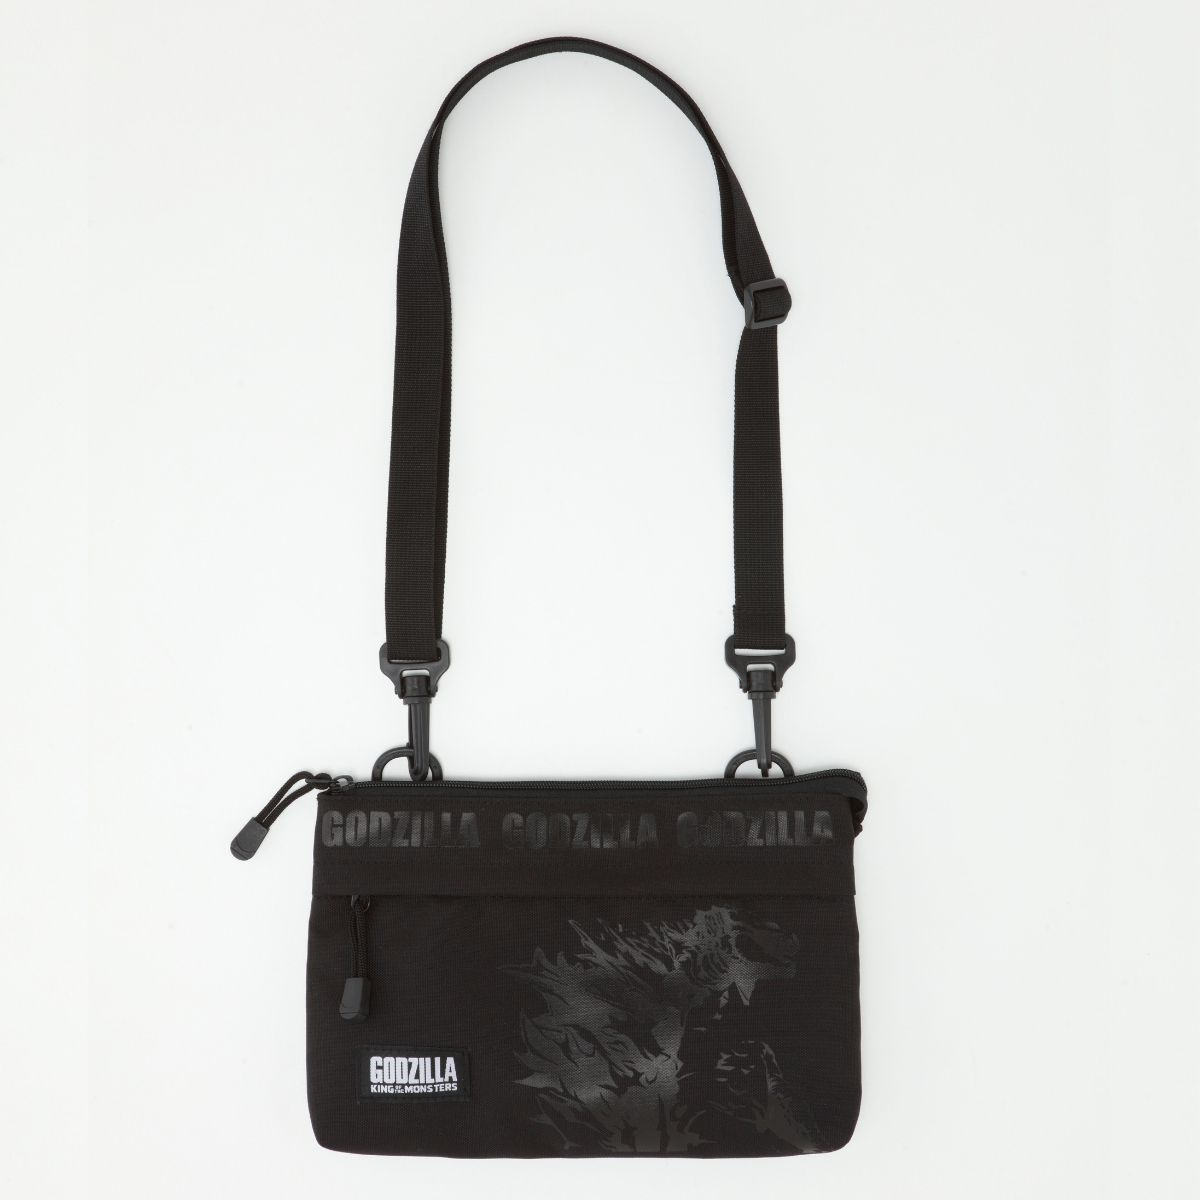 Godzilla King of the Monsters Shoulder Bag - Godzilla ver.